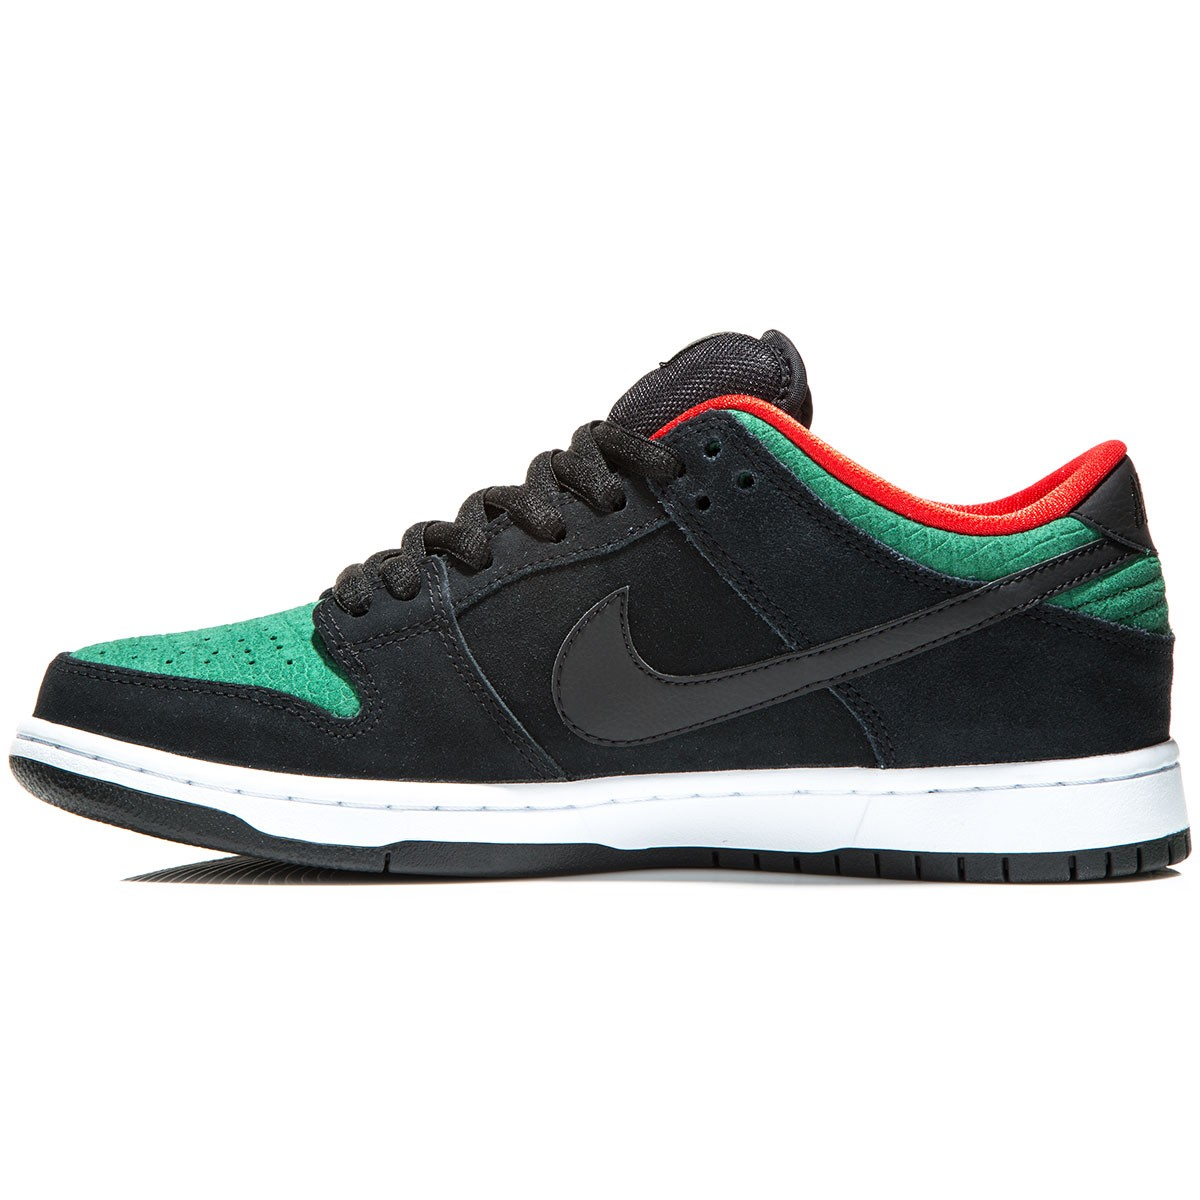 nike dunk low pro sb shoes. Black Bedroom Furniture Sets. Home Design Ideas